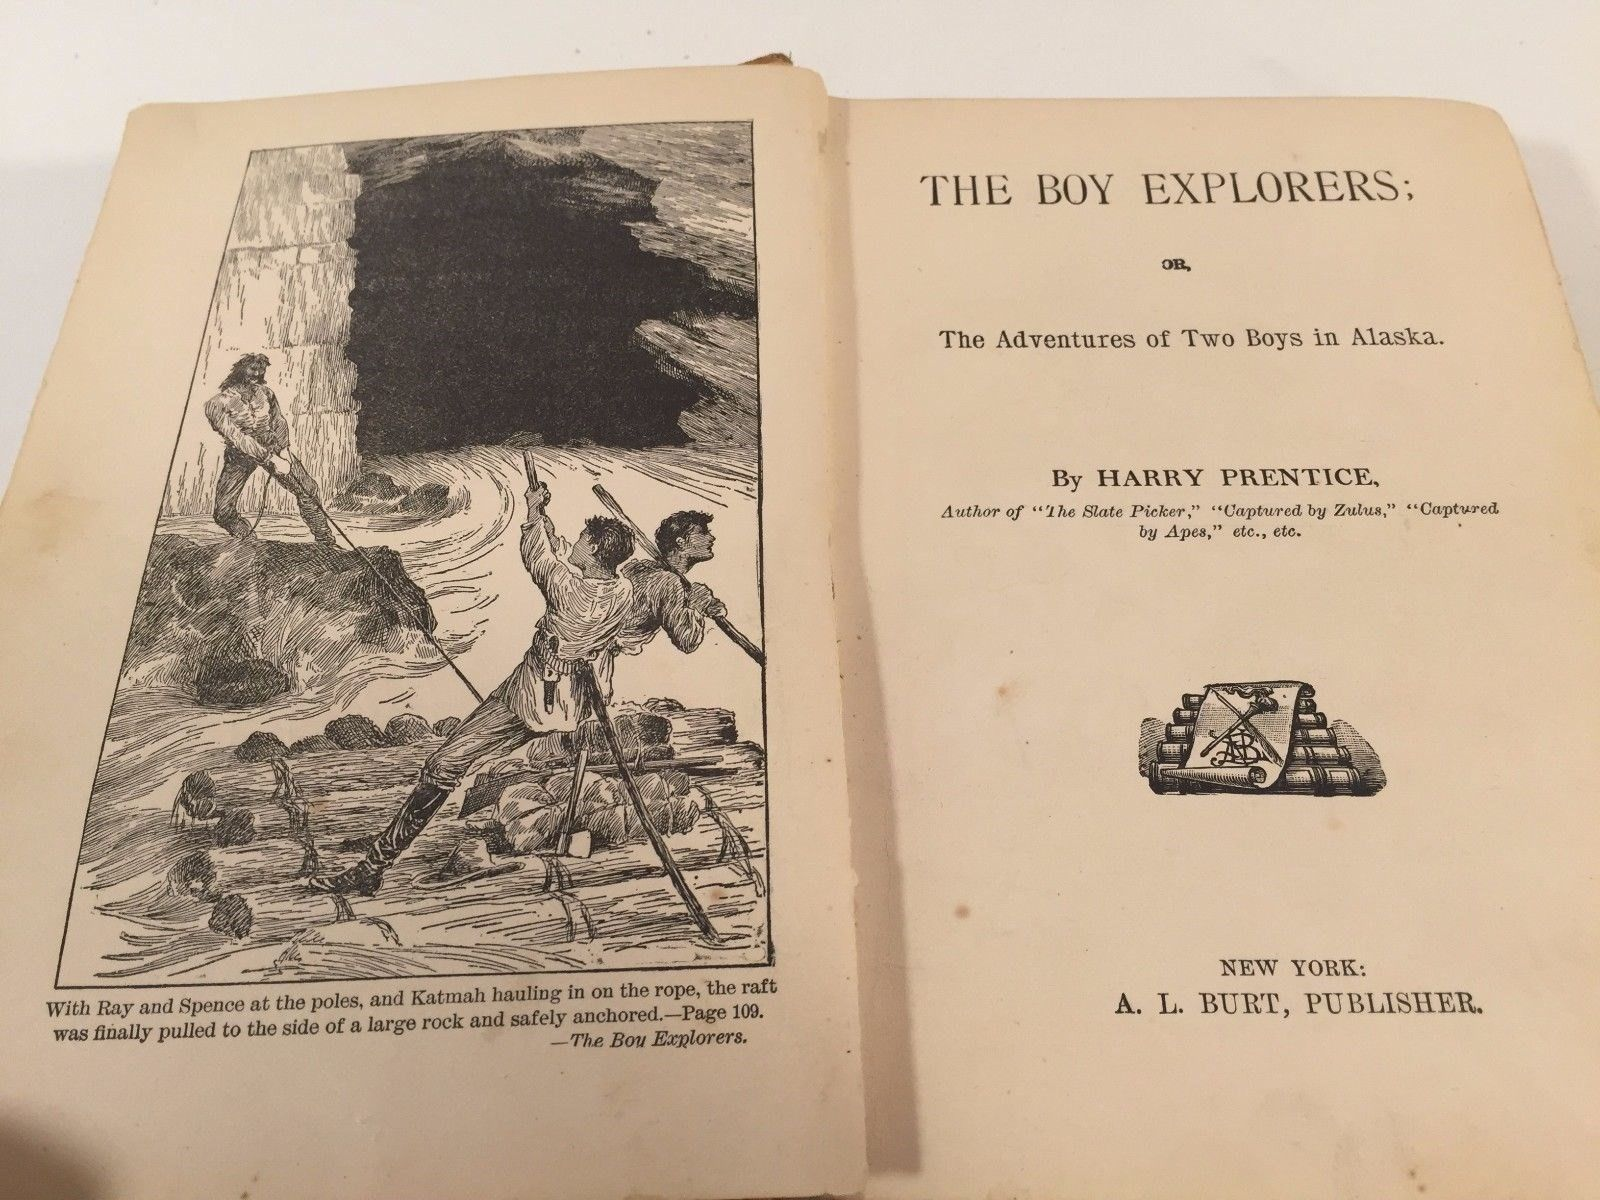 The Boy Explorers by Harry Prentice: Adventures of Two Boys in Alaska - HB 1895